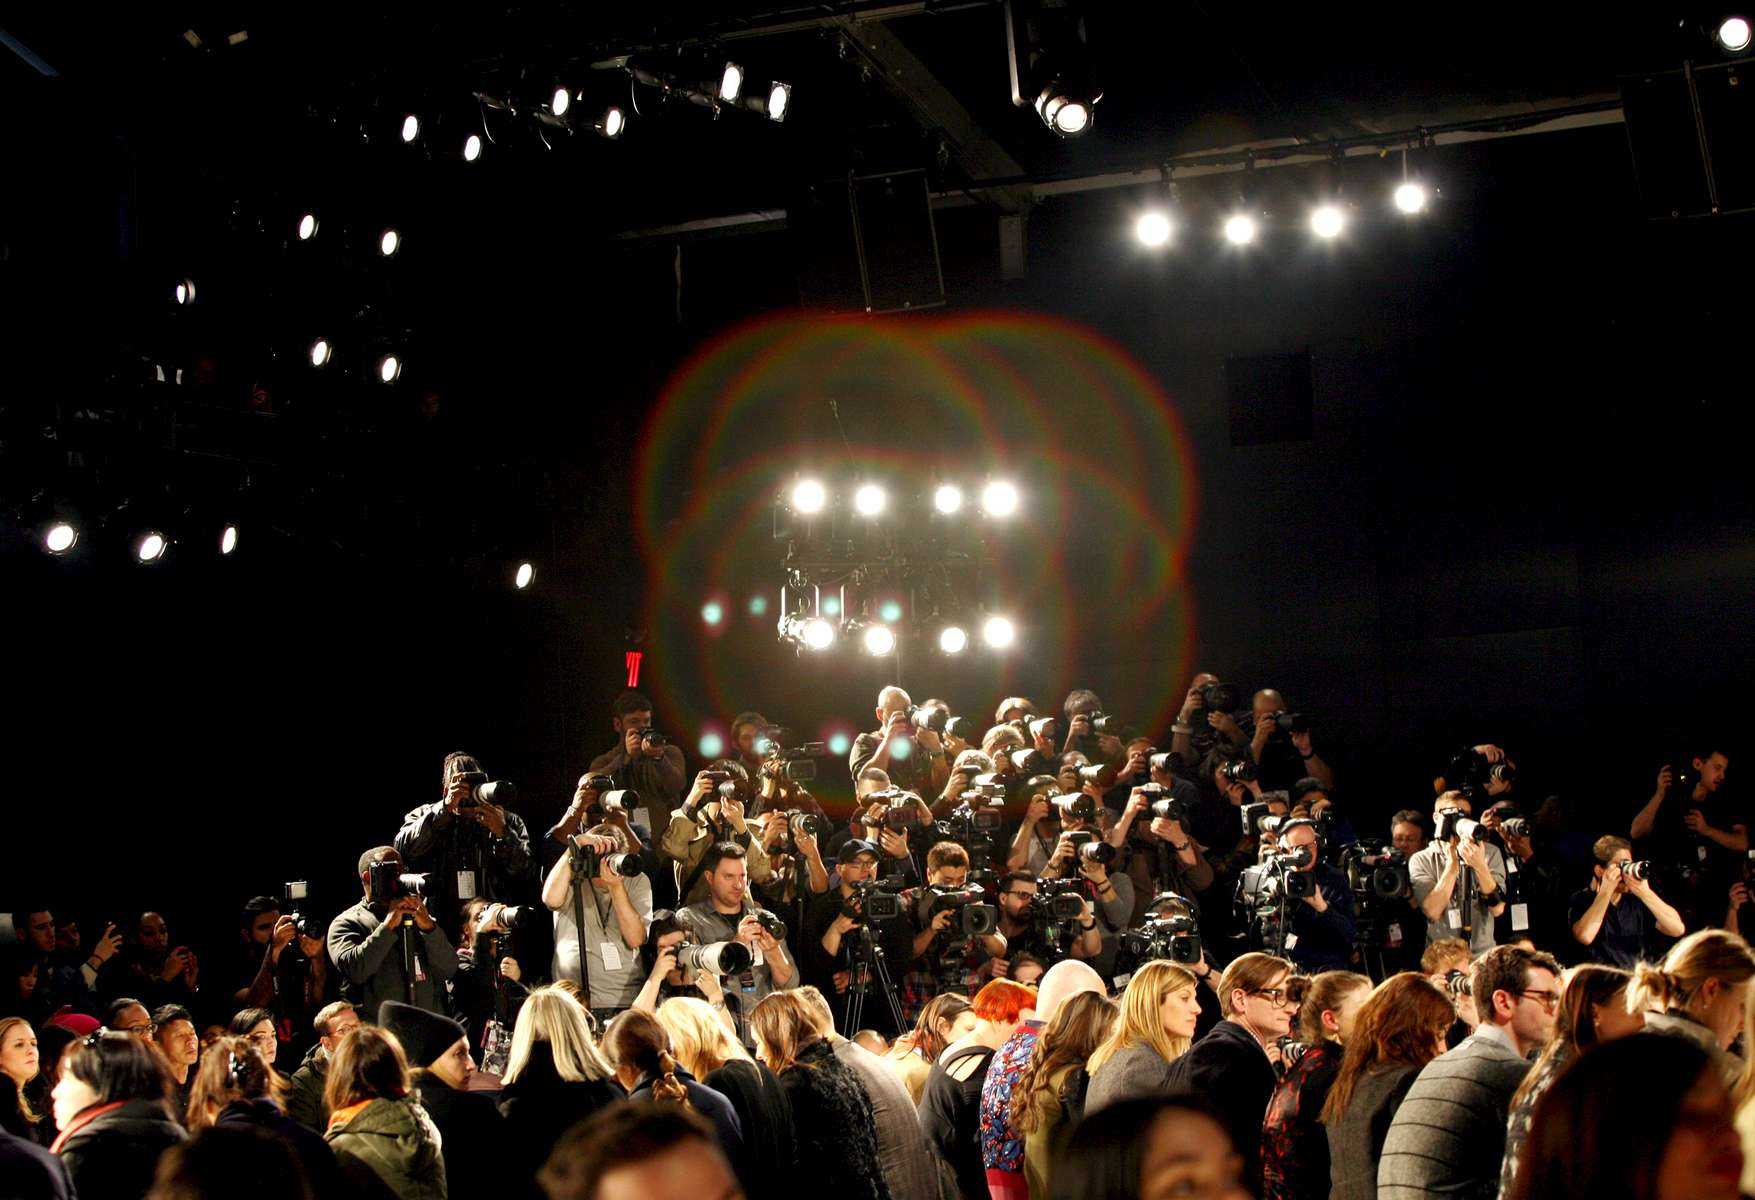 Photographers in the media pit shoot the Creatures of the Wind show at the Lincoln Center in Manhattan, New York, on February 6, 2014, the first day of that season's Mercedes-Benz Fashion Week. (For The New York Times)